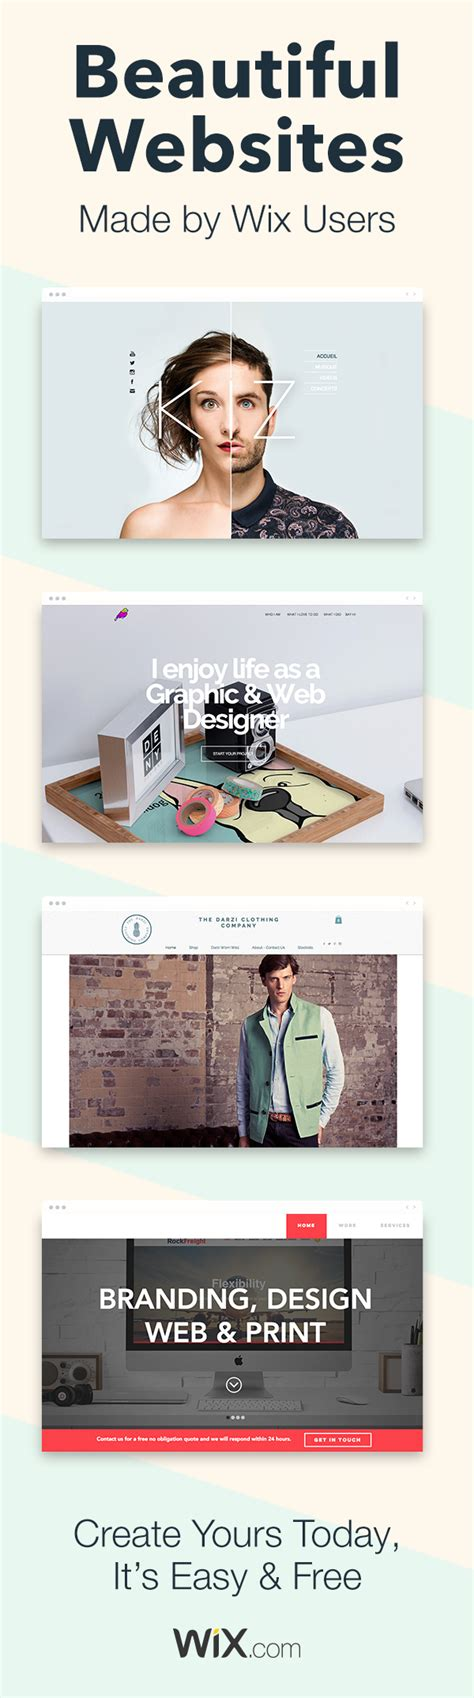 Need A Website Why Not Do It Yourself Create Yours Today With Wix It S Easy Free Website Do It Yourself Website Templates